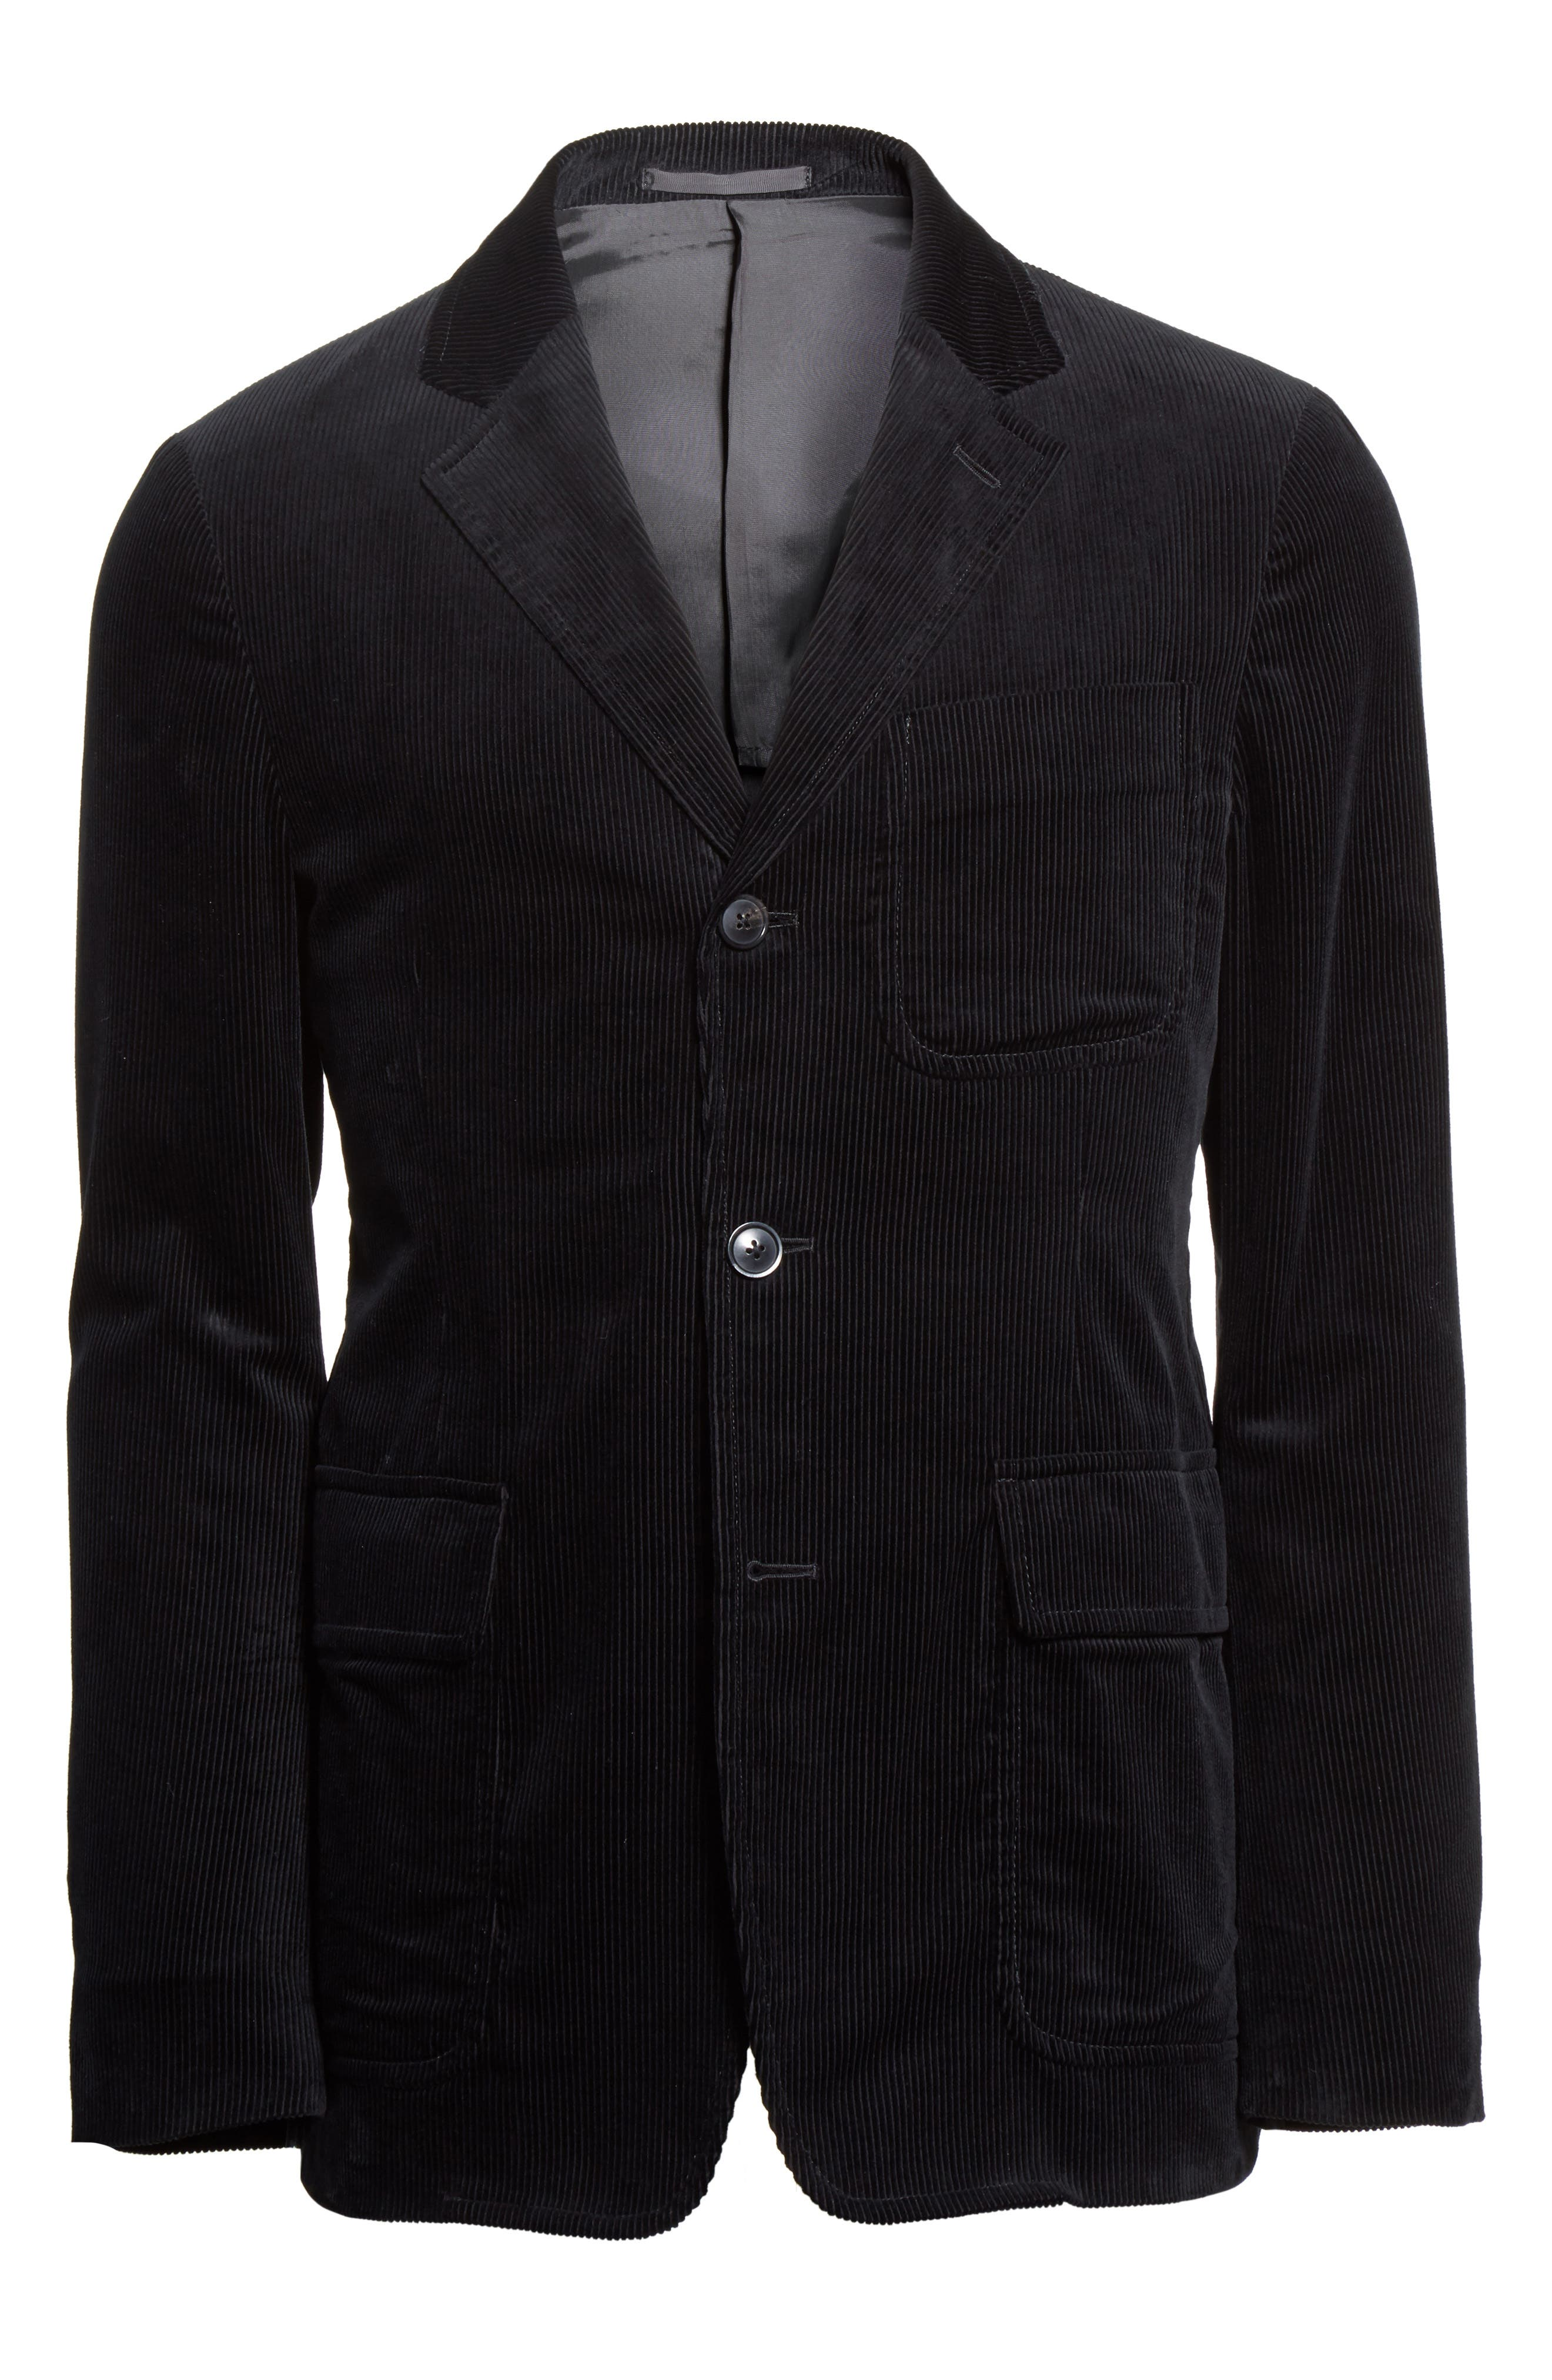 Sea Island Corduroy Jacket,                             Alternate thumbnail 6, color,                             Black